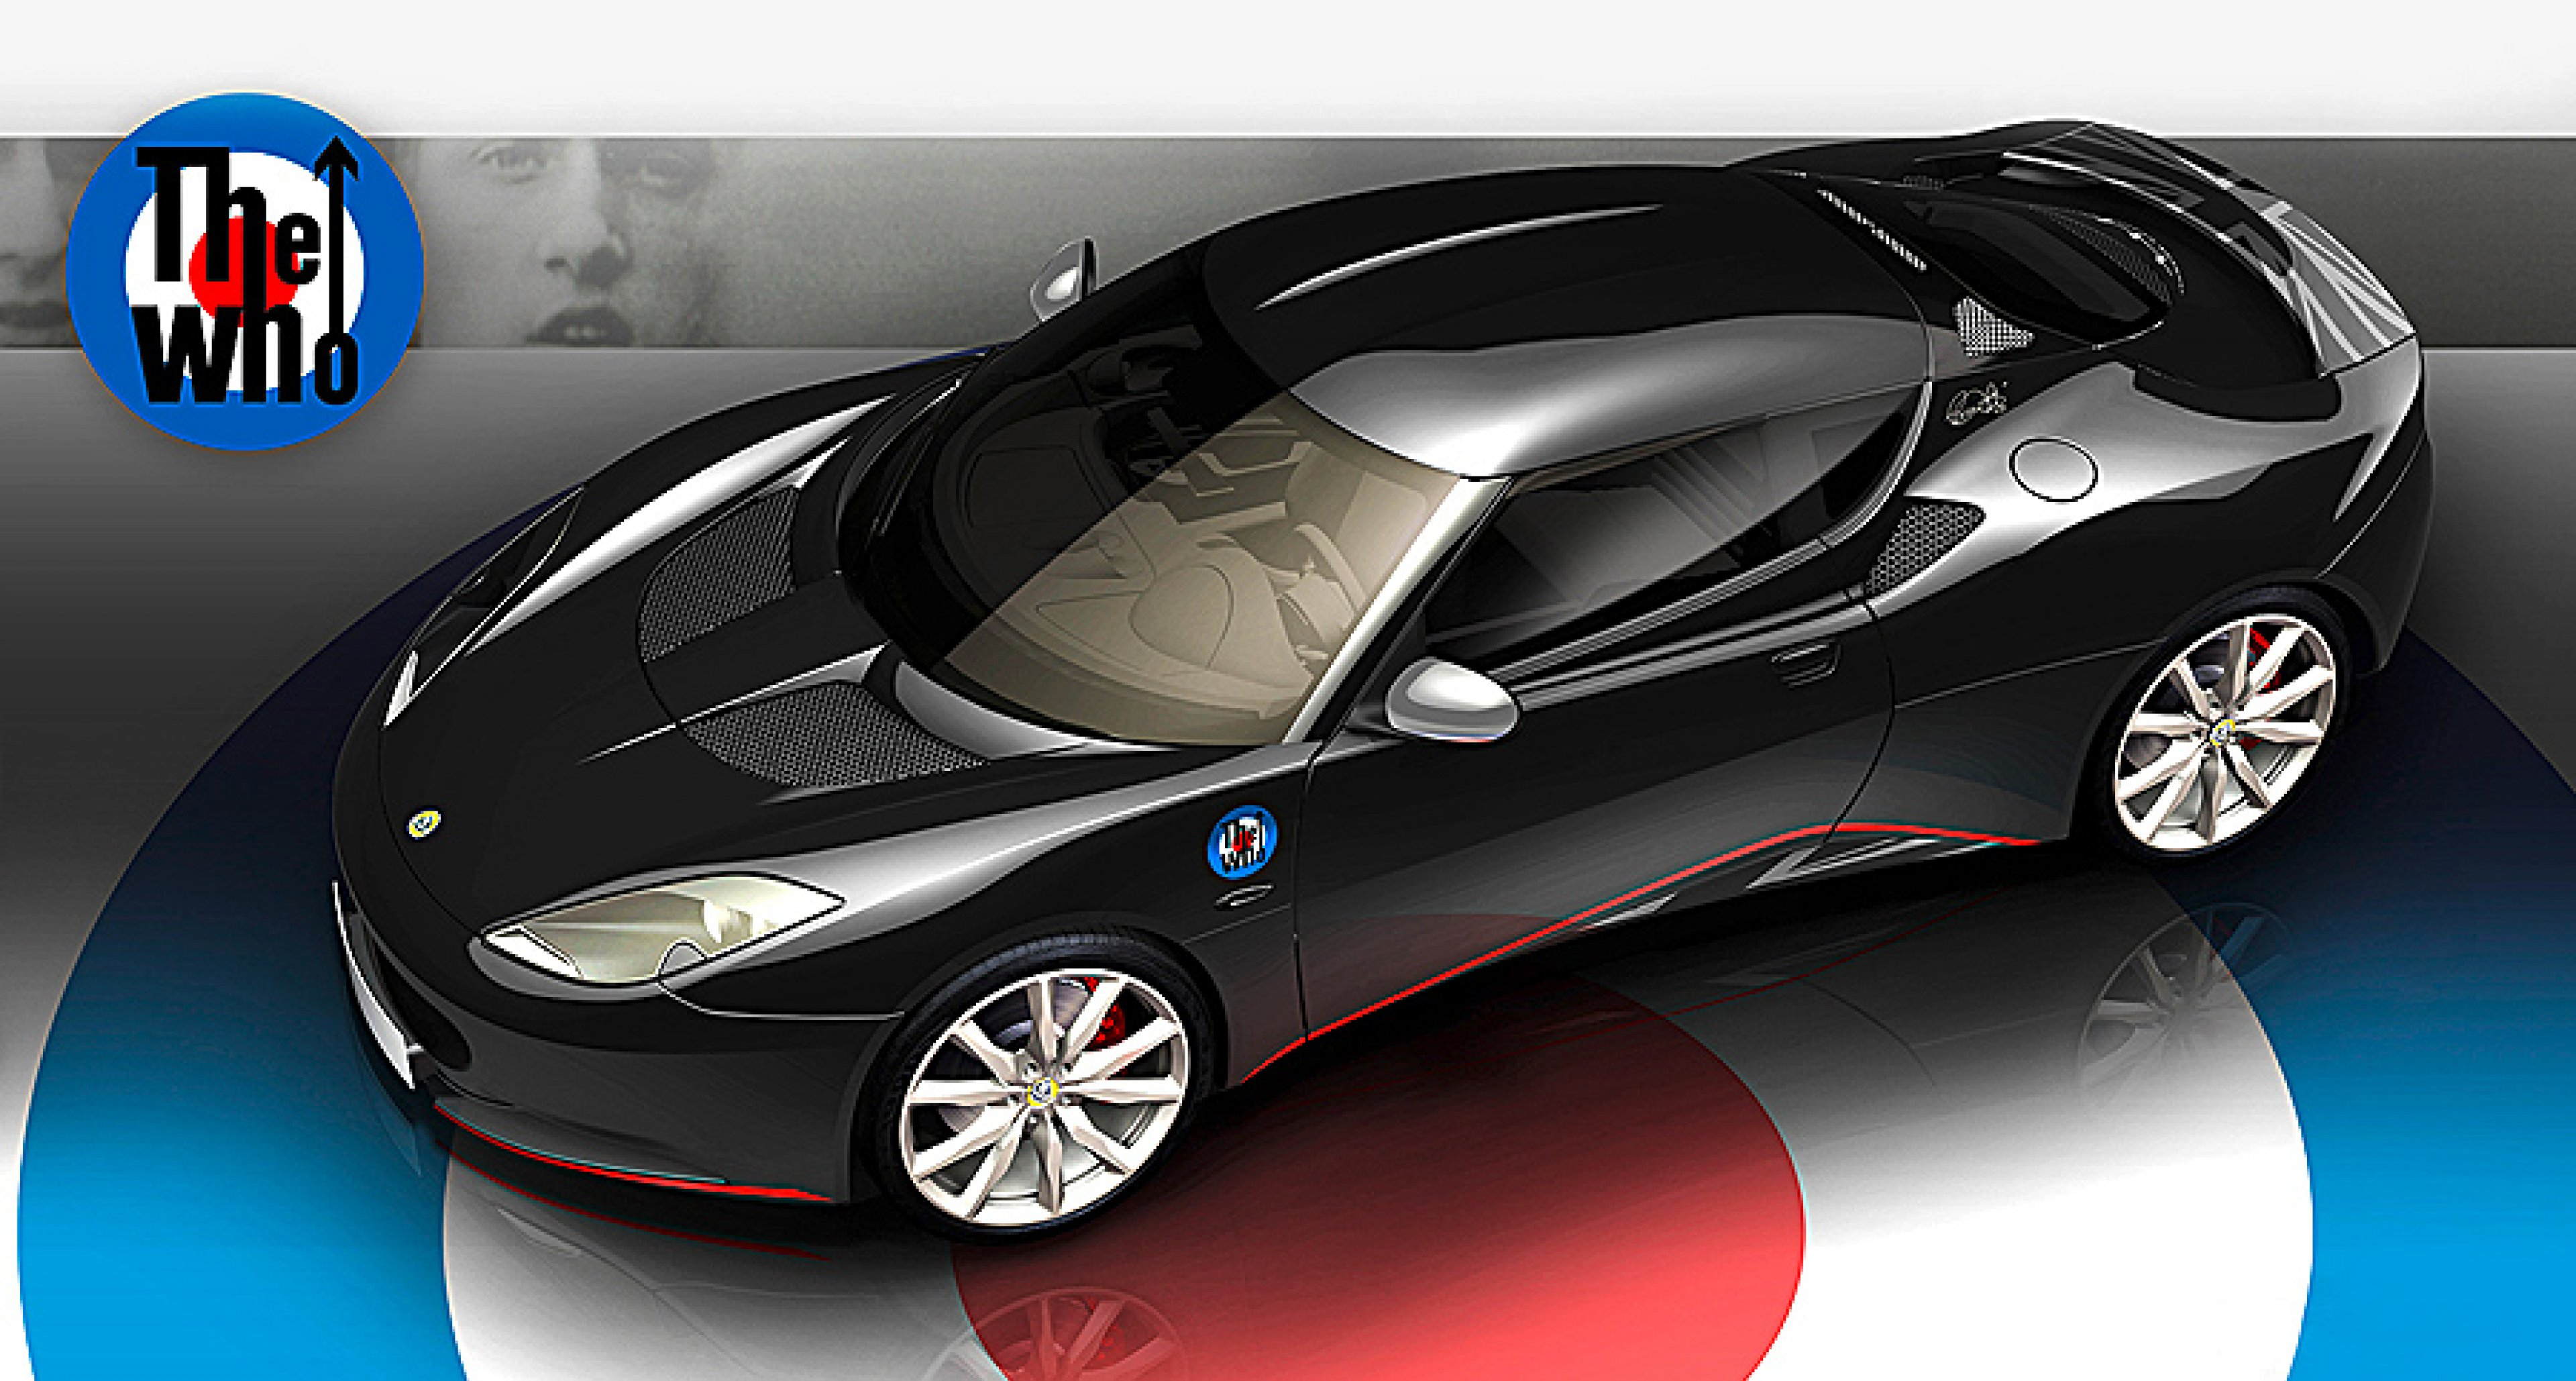 'Roger Daltrey', limited-edition Evora to be sold in aid of Teenage Cancer Trust